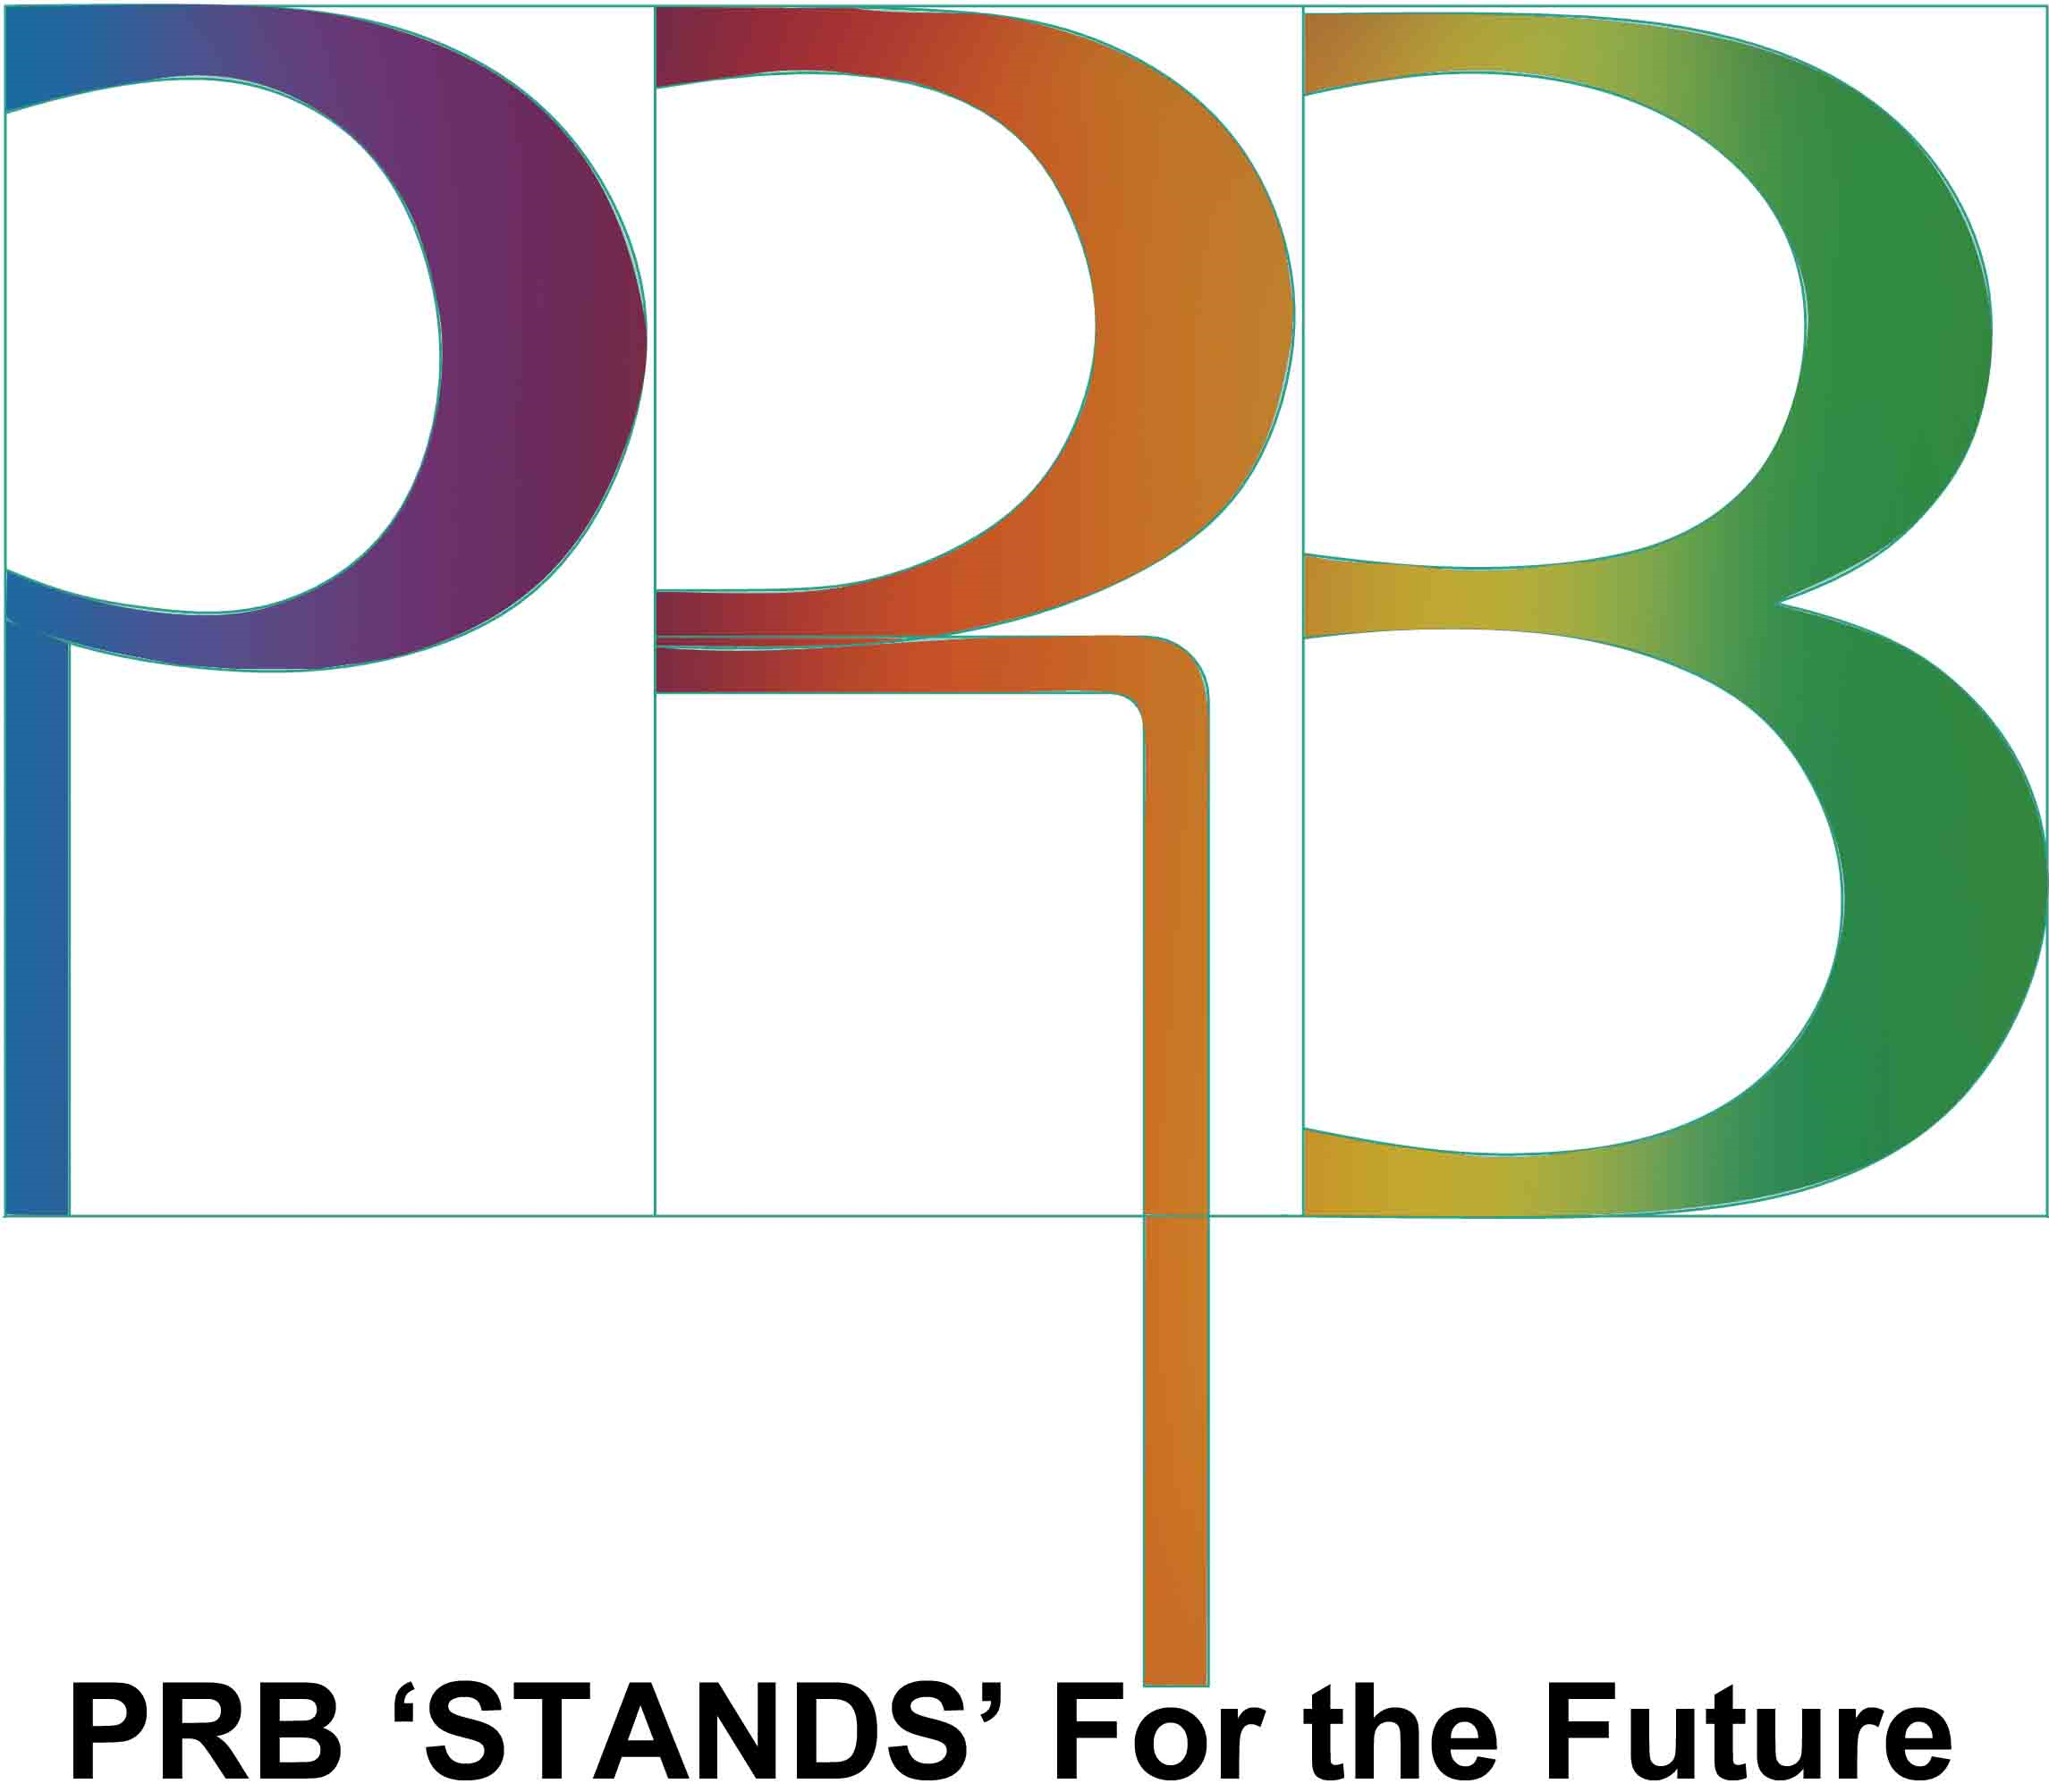 PRB 'STANDS' For the Future